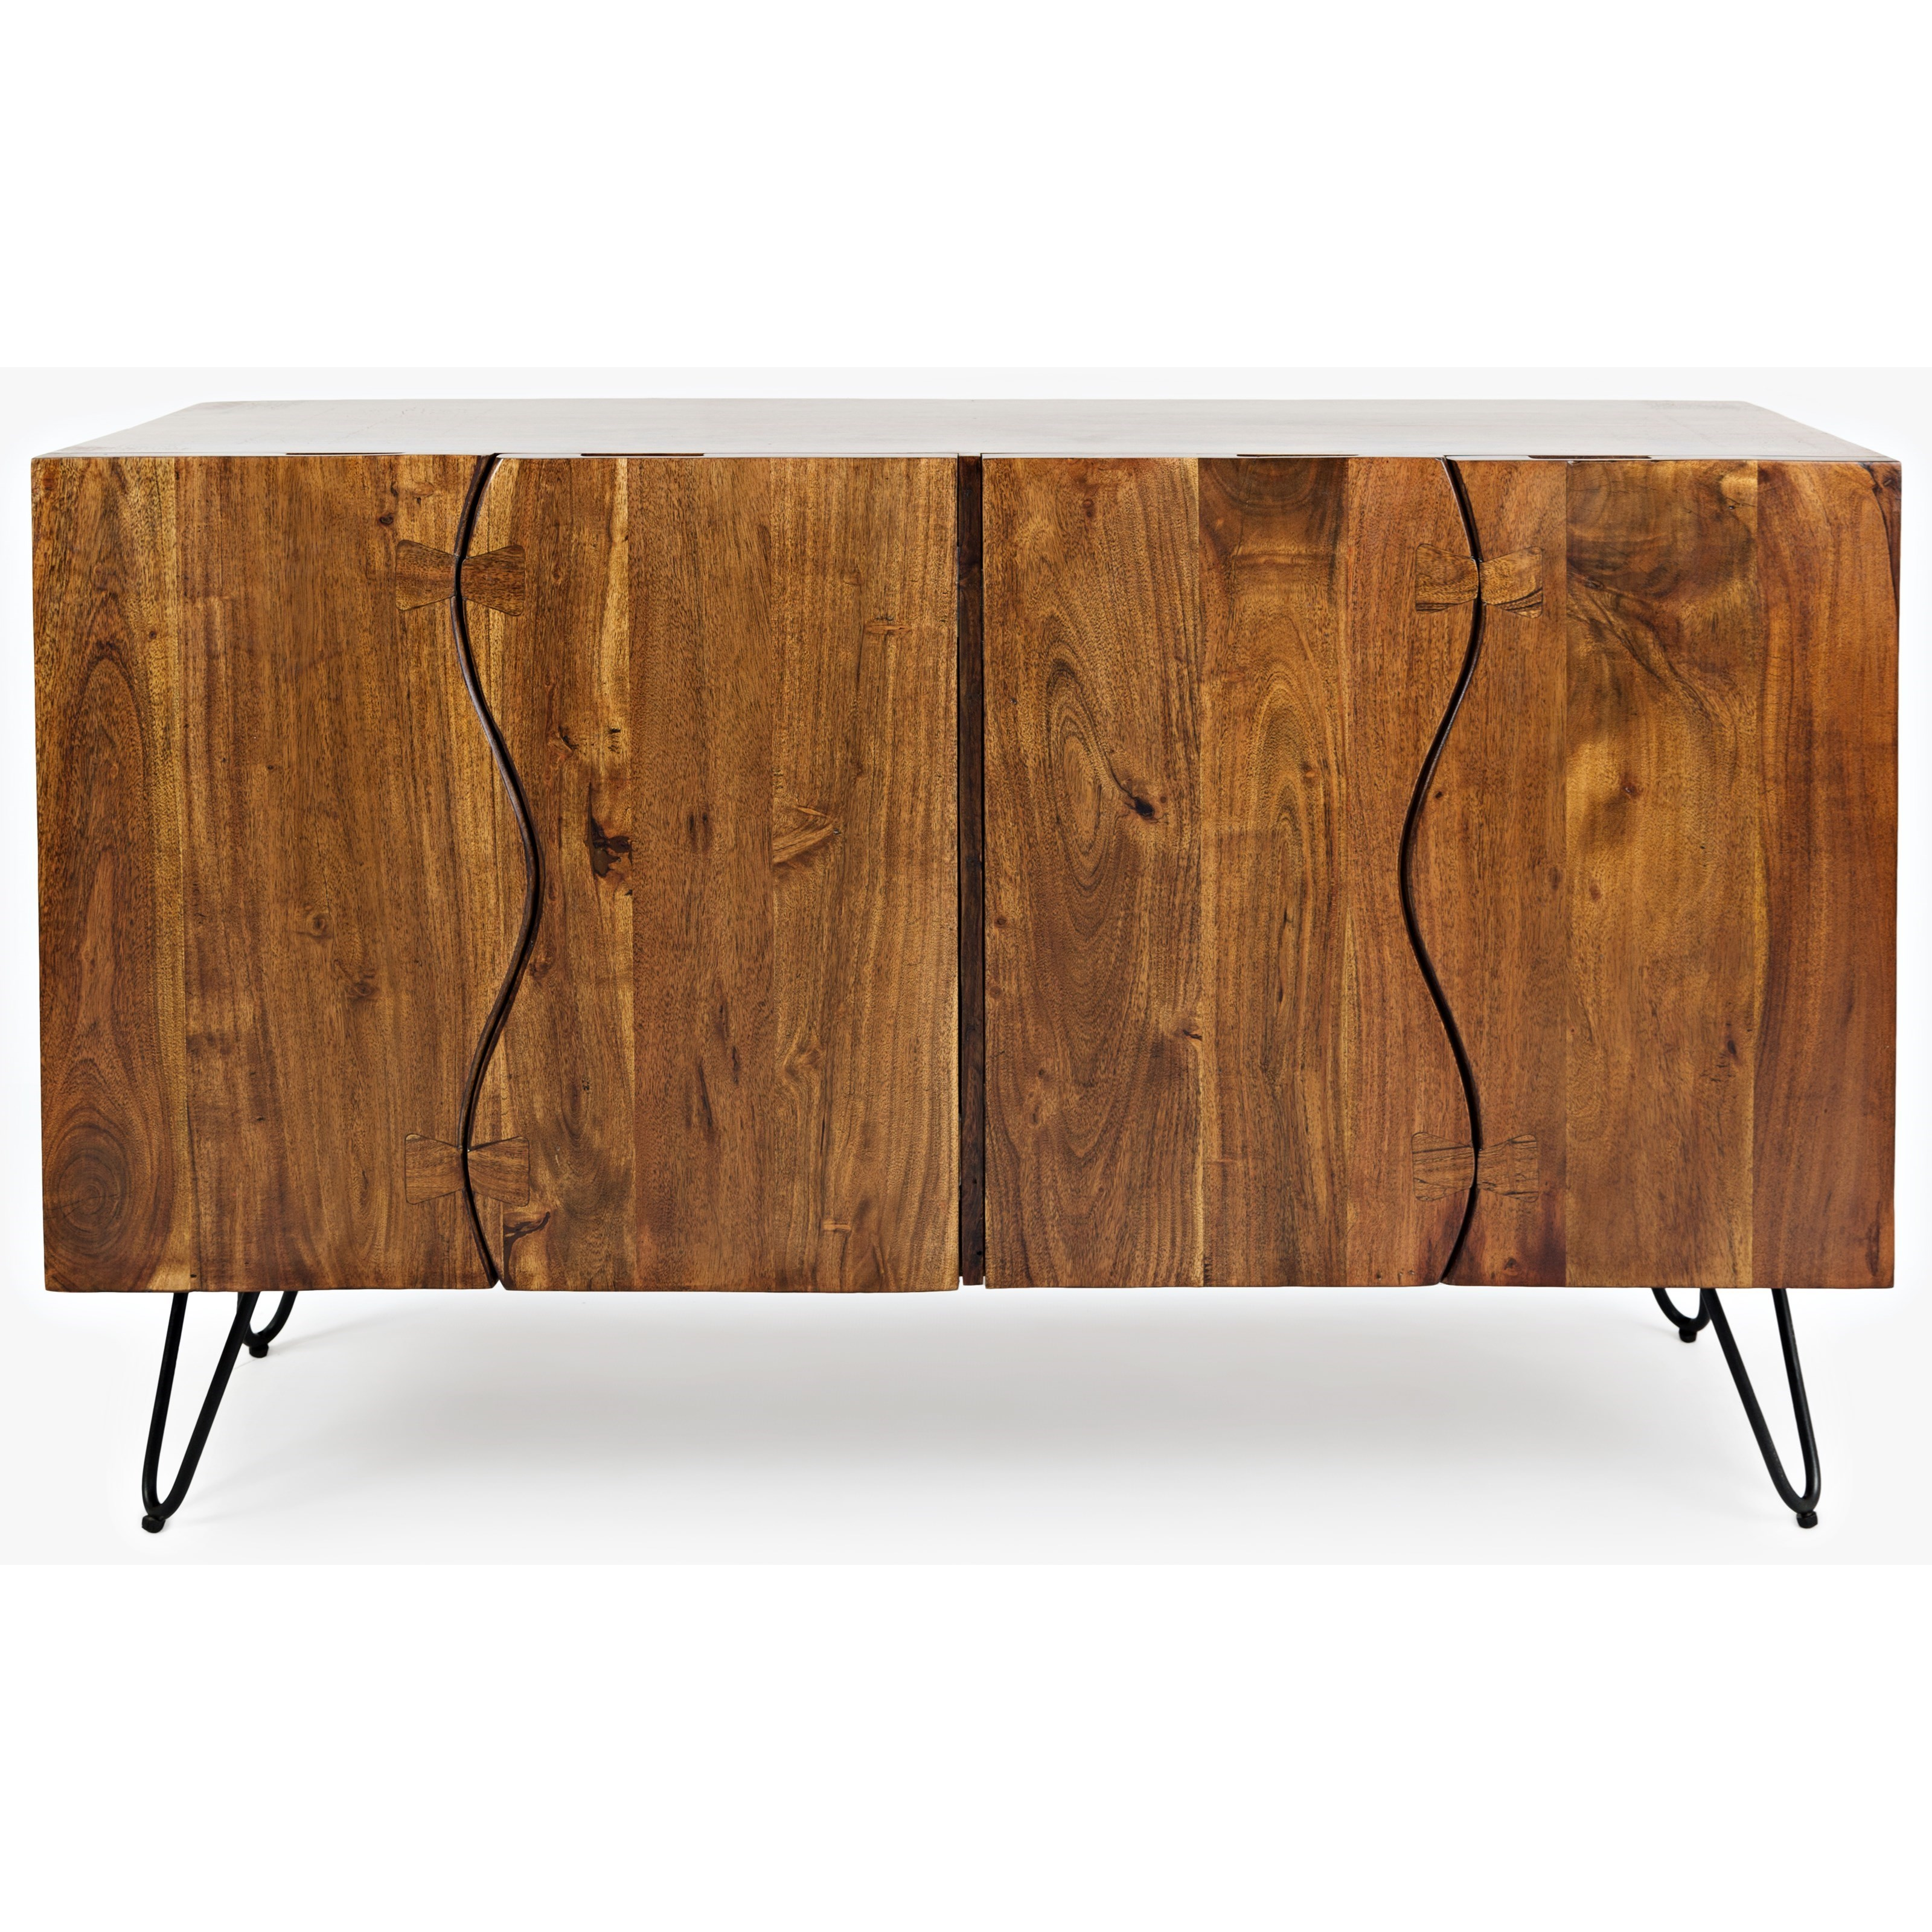 Nature's Edge Sideboard with 4 Live Edge Doors by Jofran at Jofran